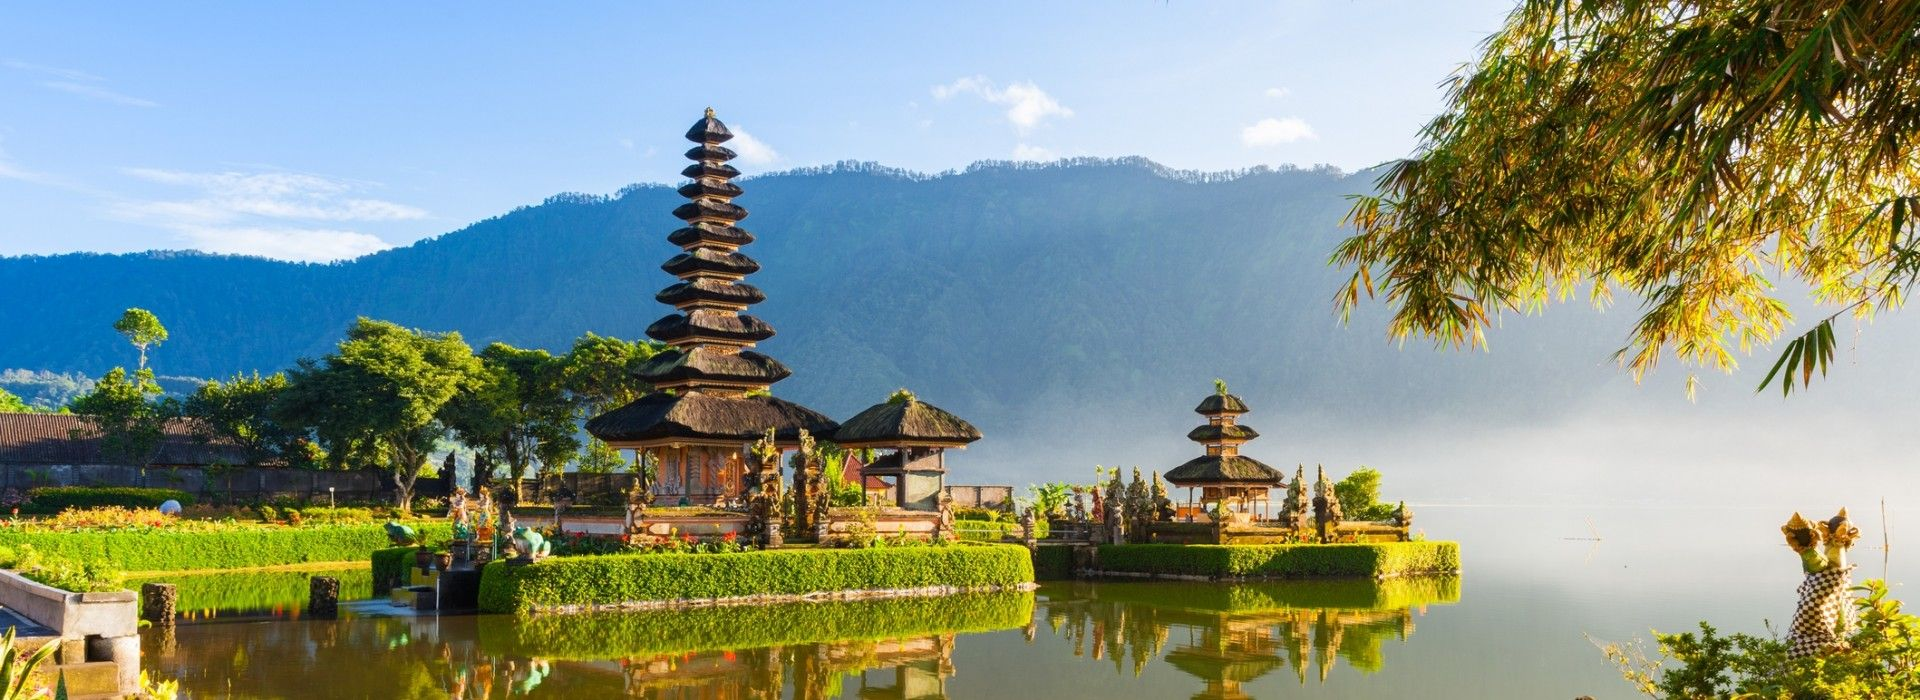 Countryside and village visits Tours in Indonesia